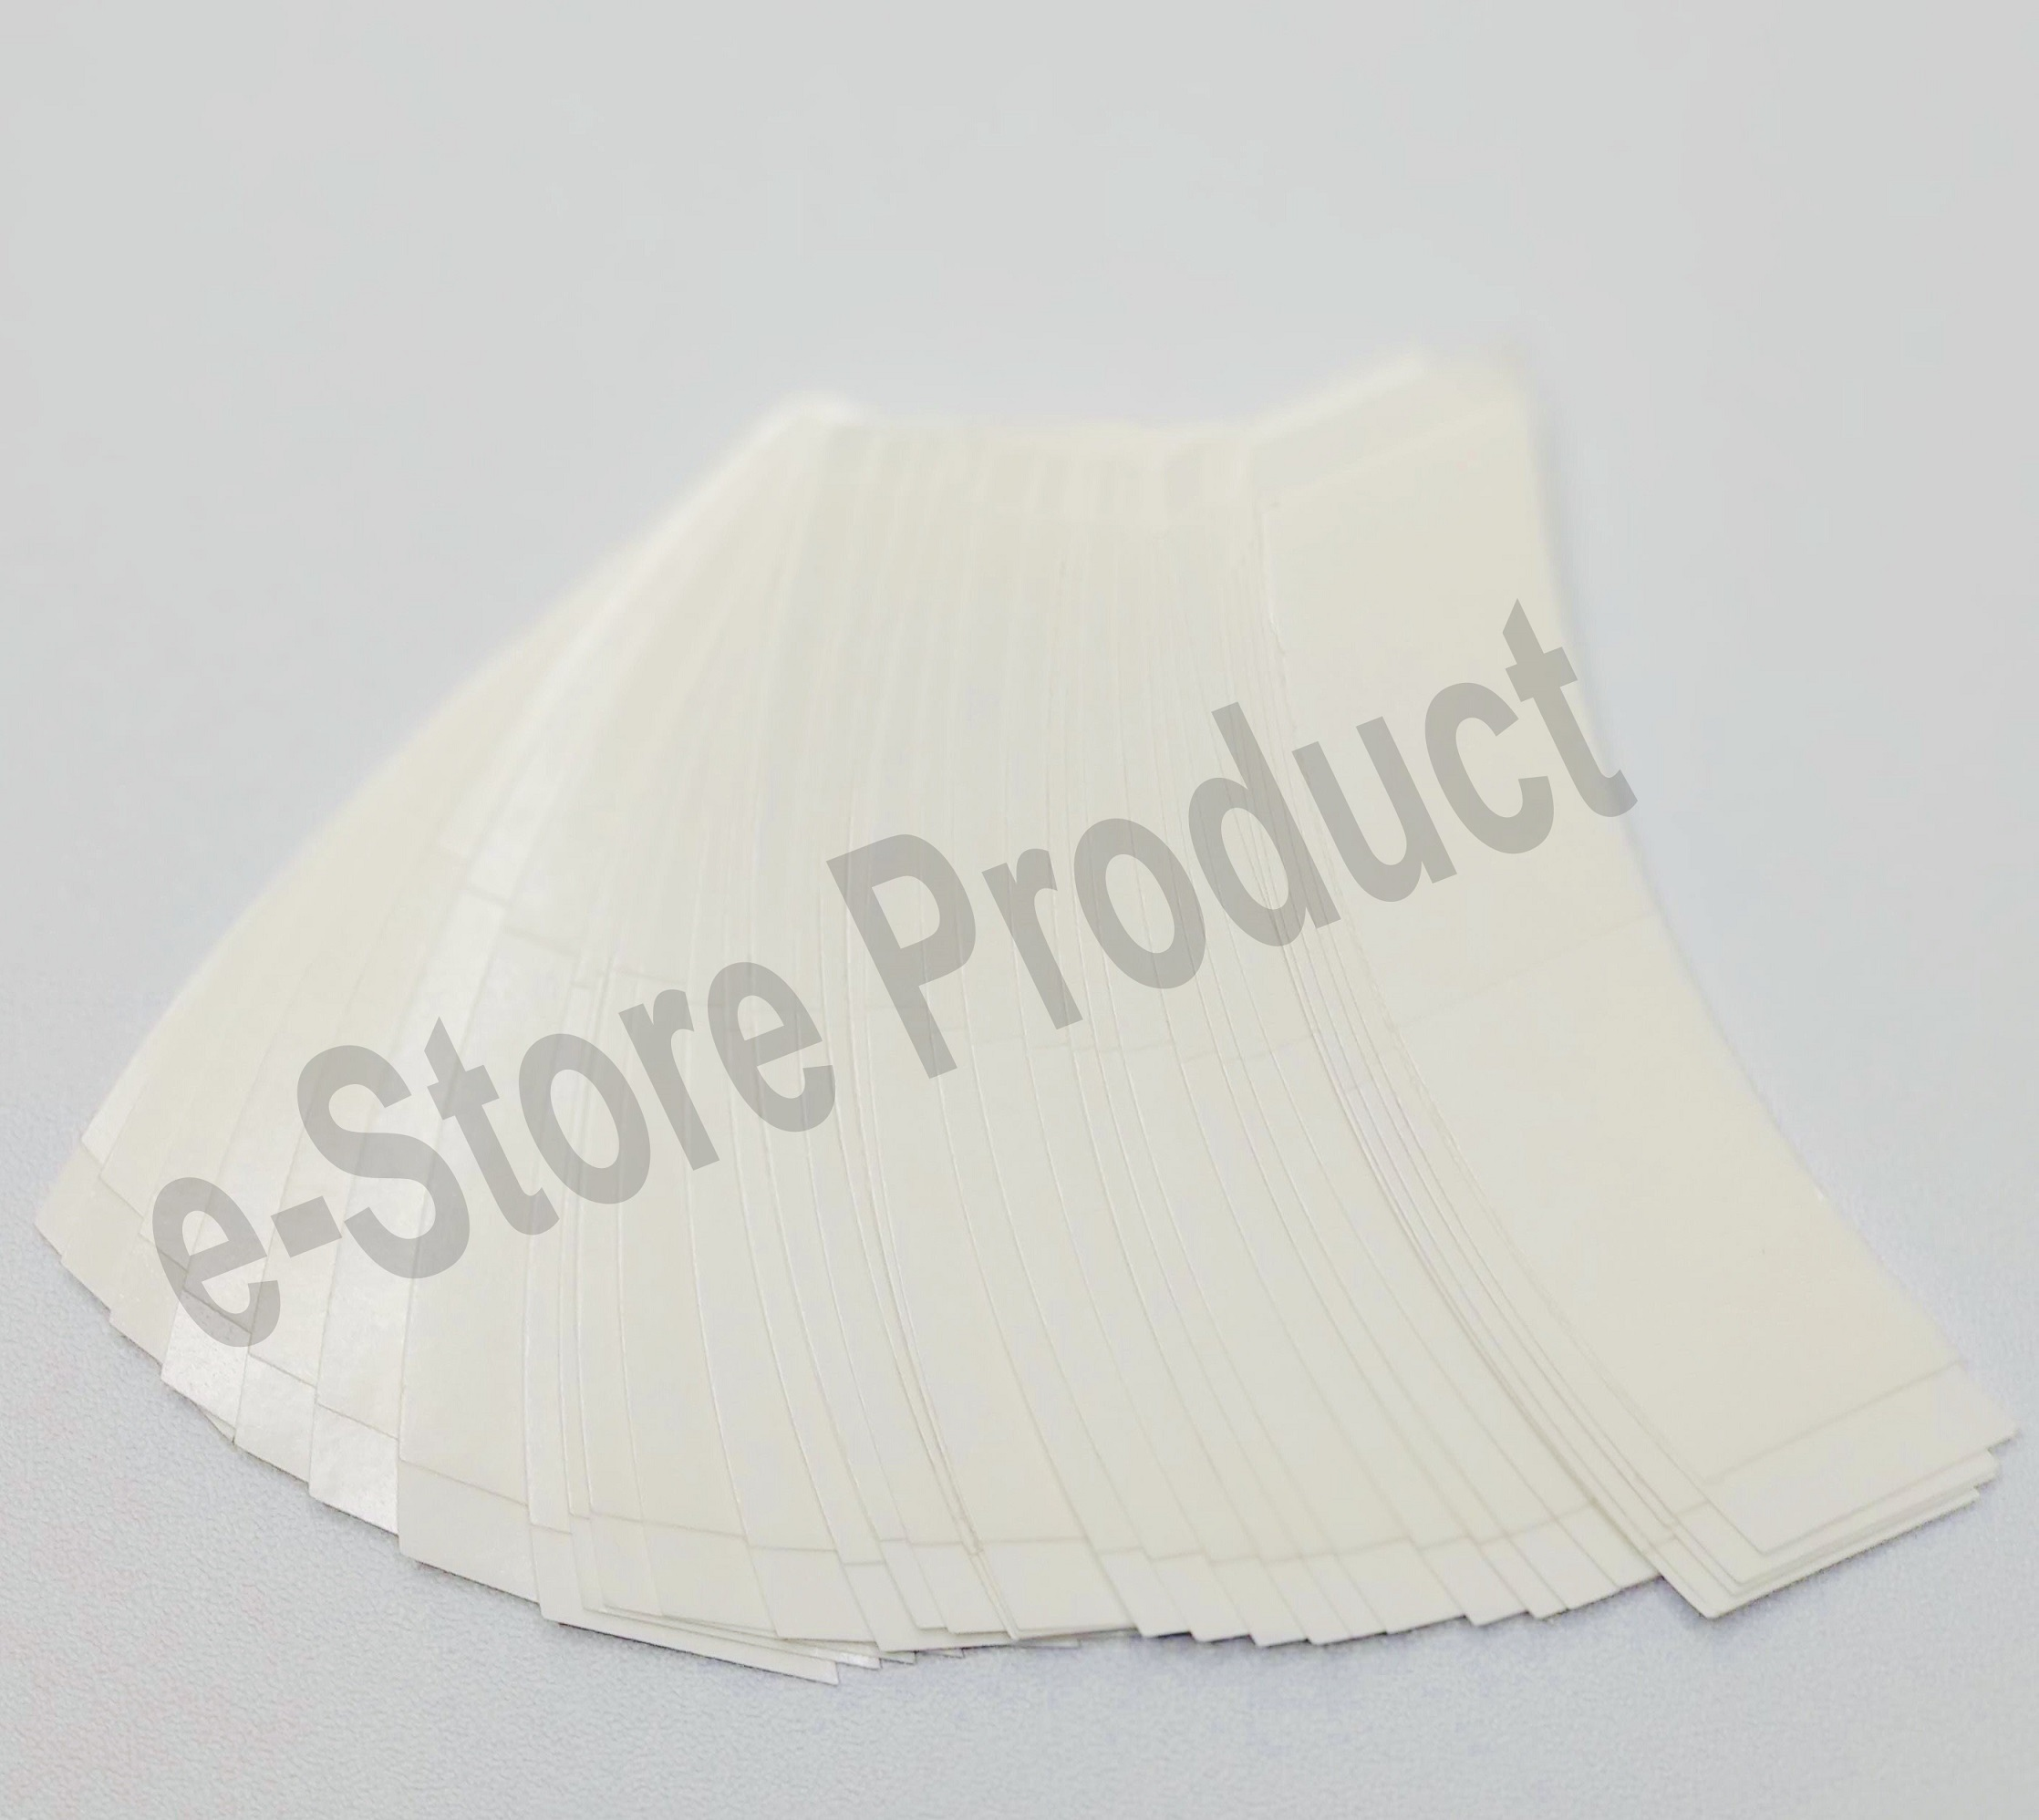 8 x Front Lace Original USA made ULTRA HOLD Waterproof (3 inch) Strips for Hair Wig Unit - Very Strong Hold (5-7 Days) Double-sided Adhesive Tape